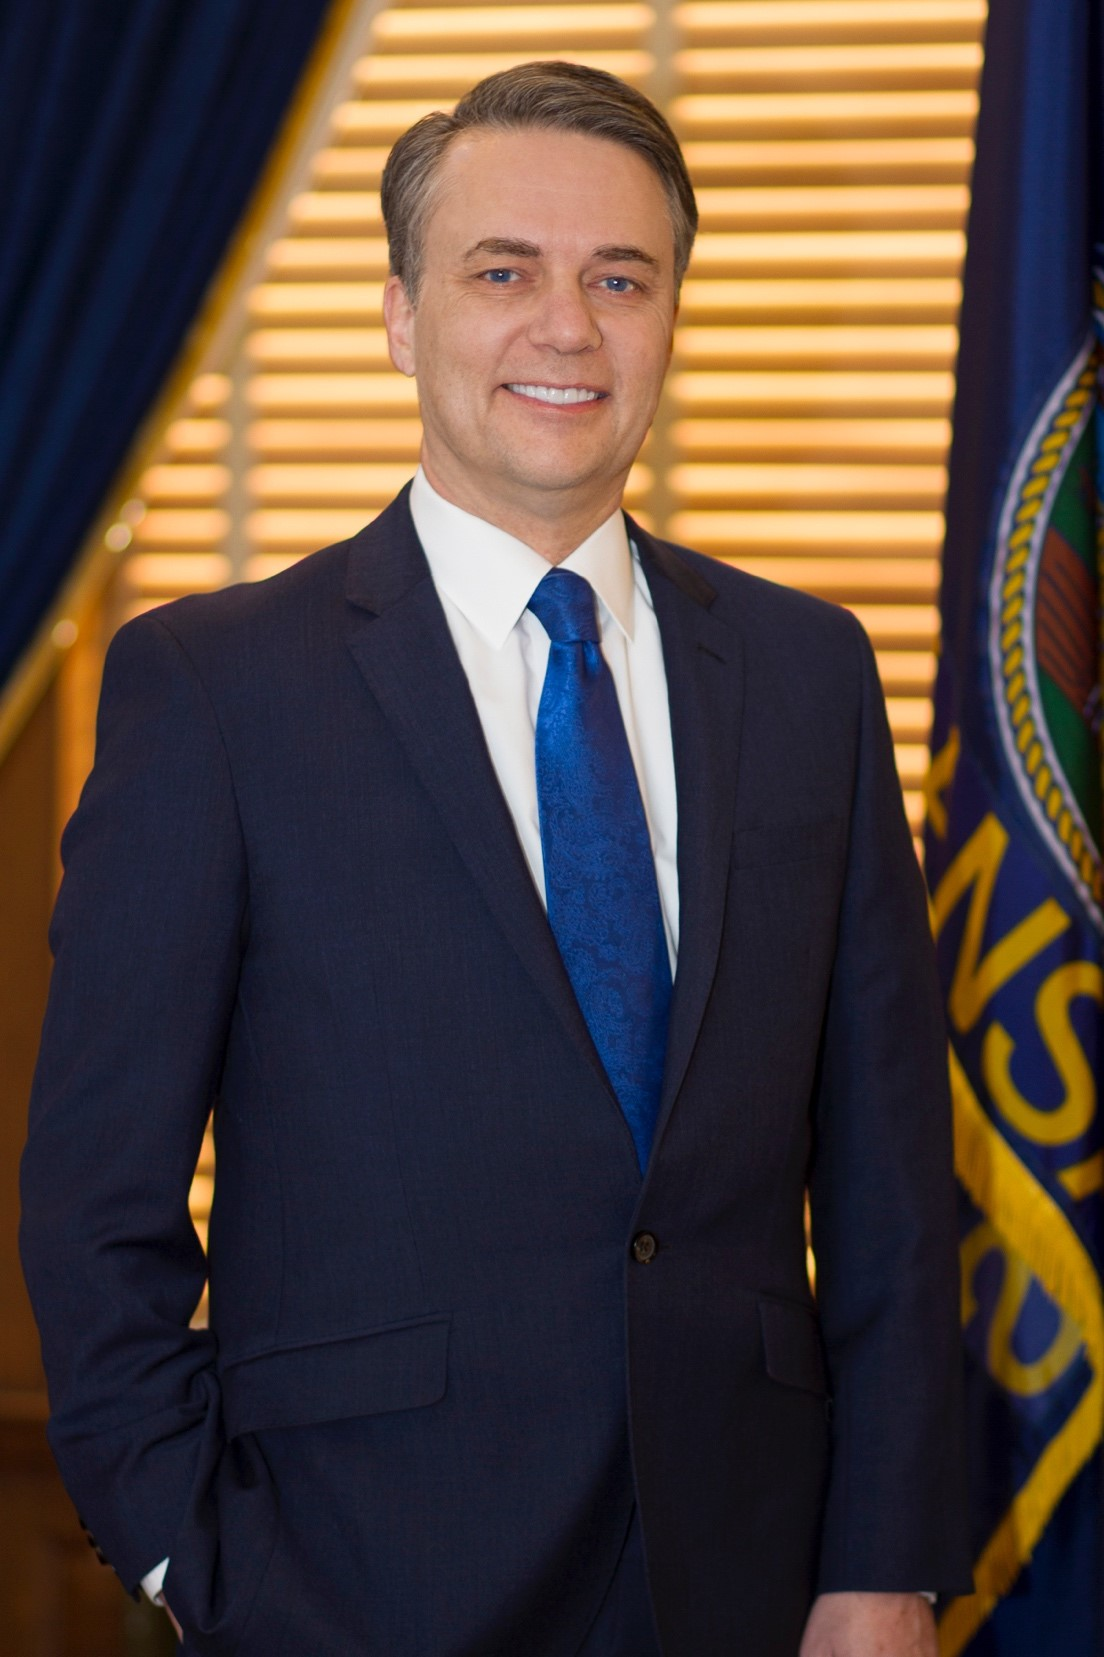 Governor Jeff Colyer, M.D.